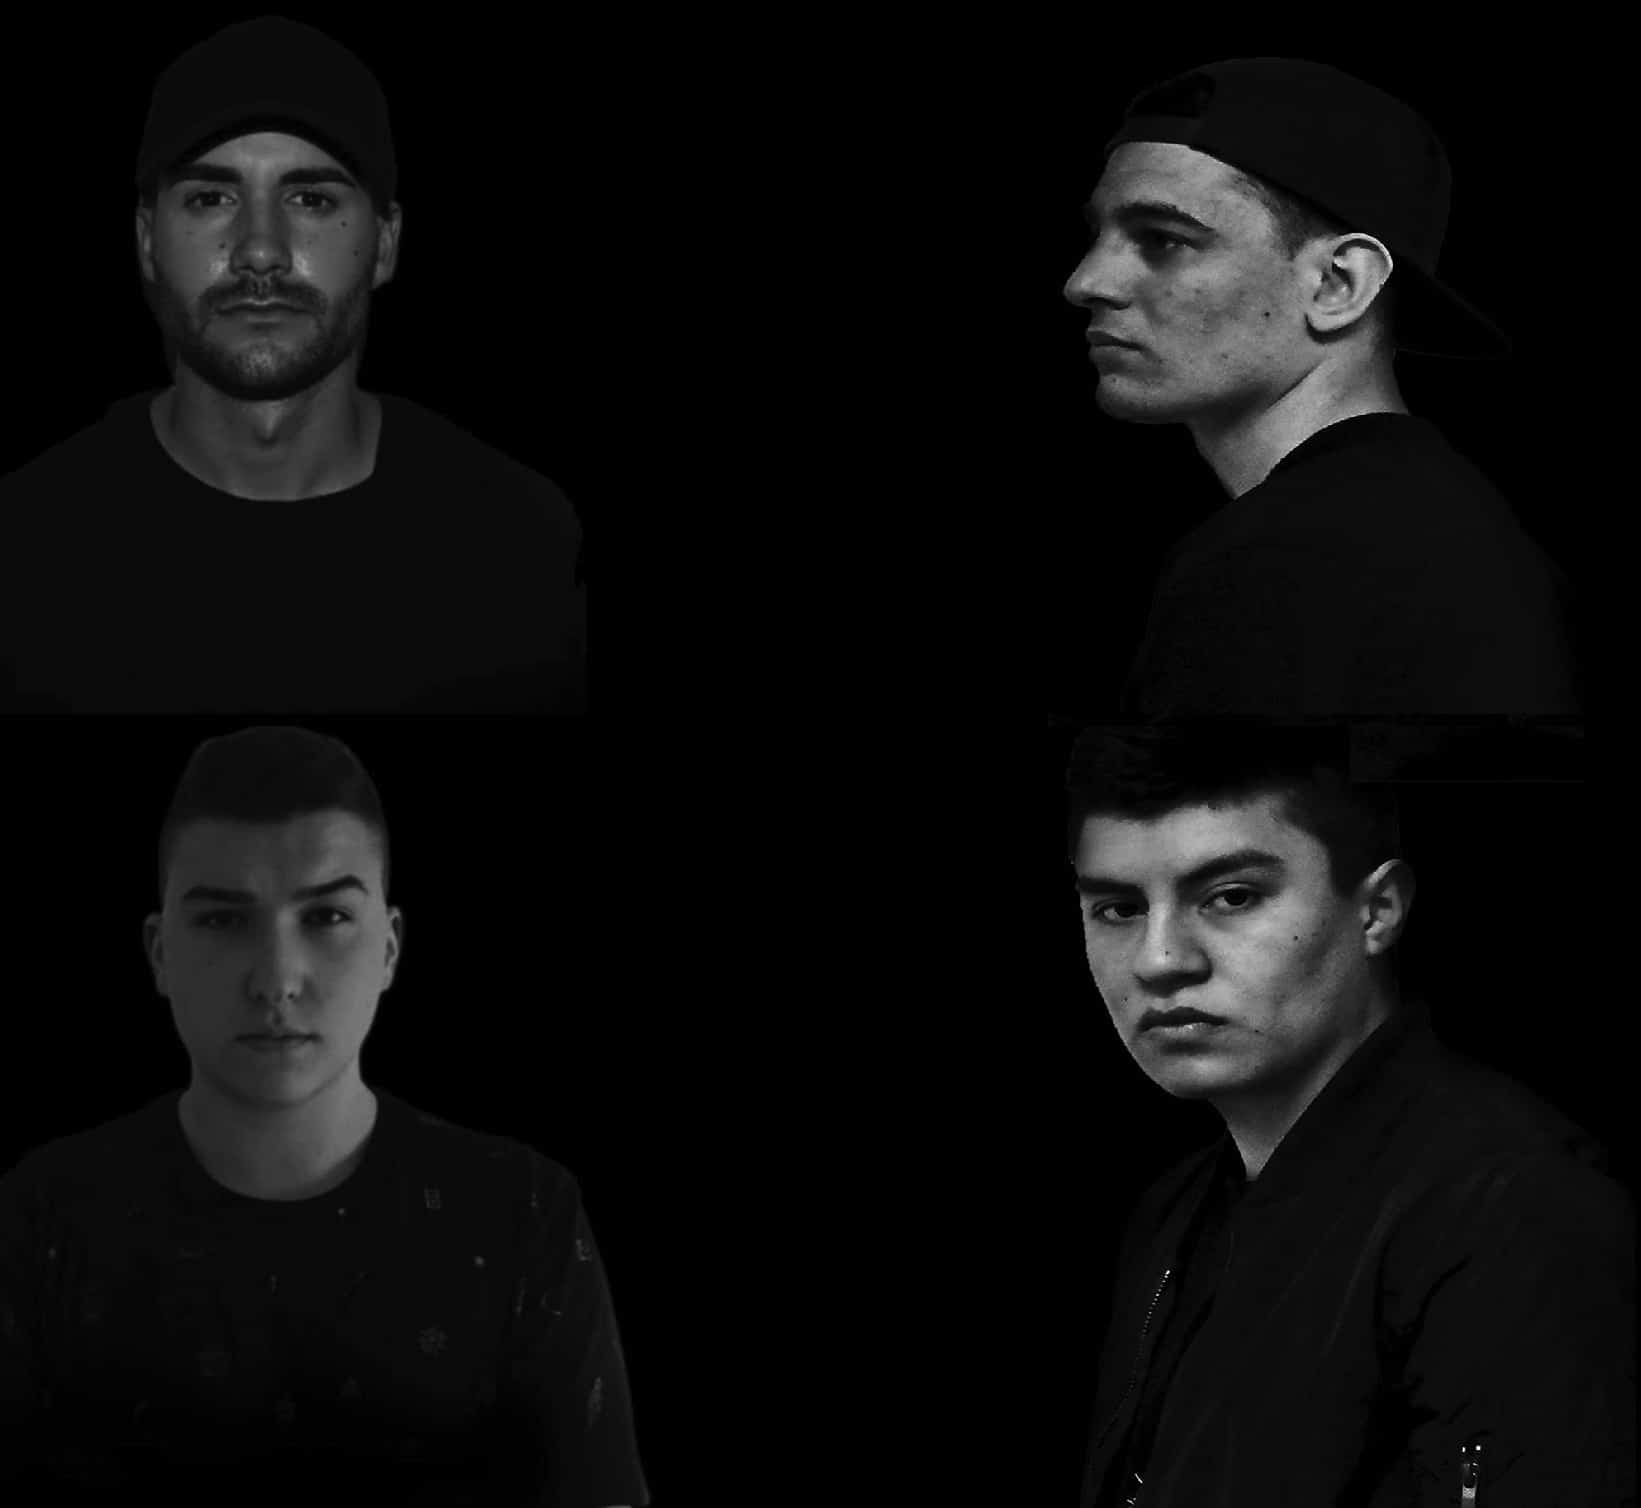 """Spanish talents Rux & Bedmar and No Hope unite for """"Gravity"""" feat. Aves Volare"""